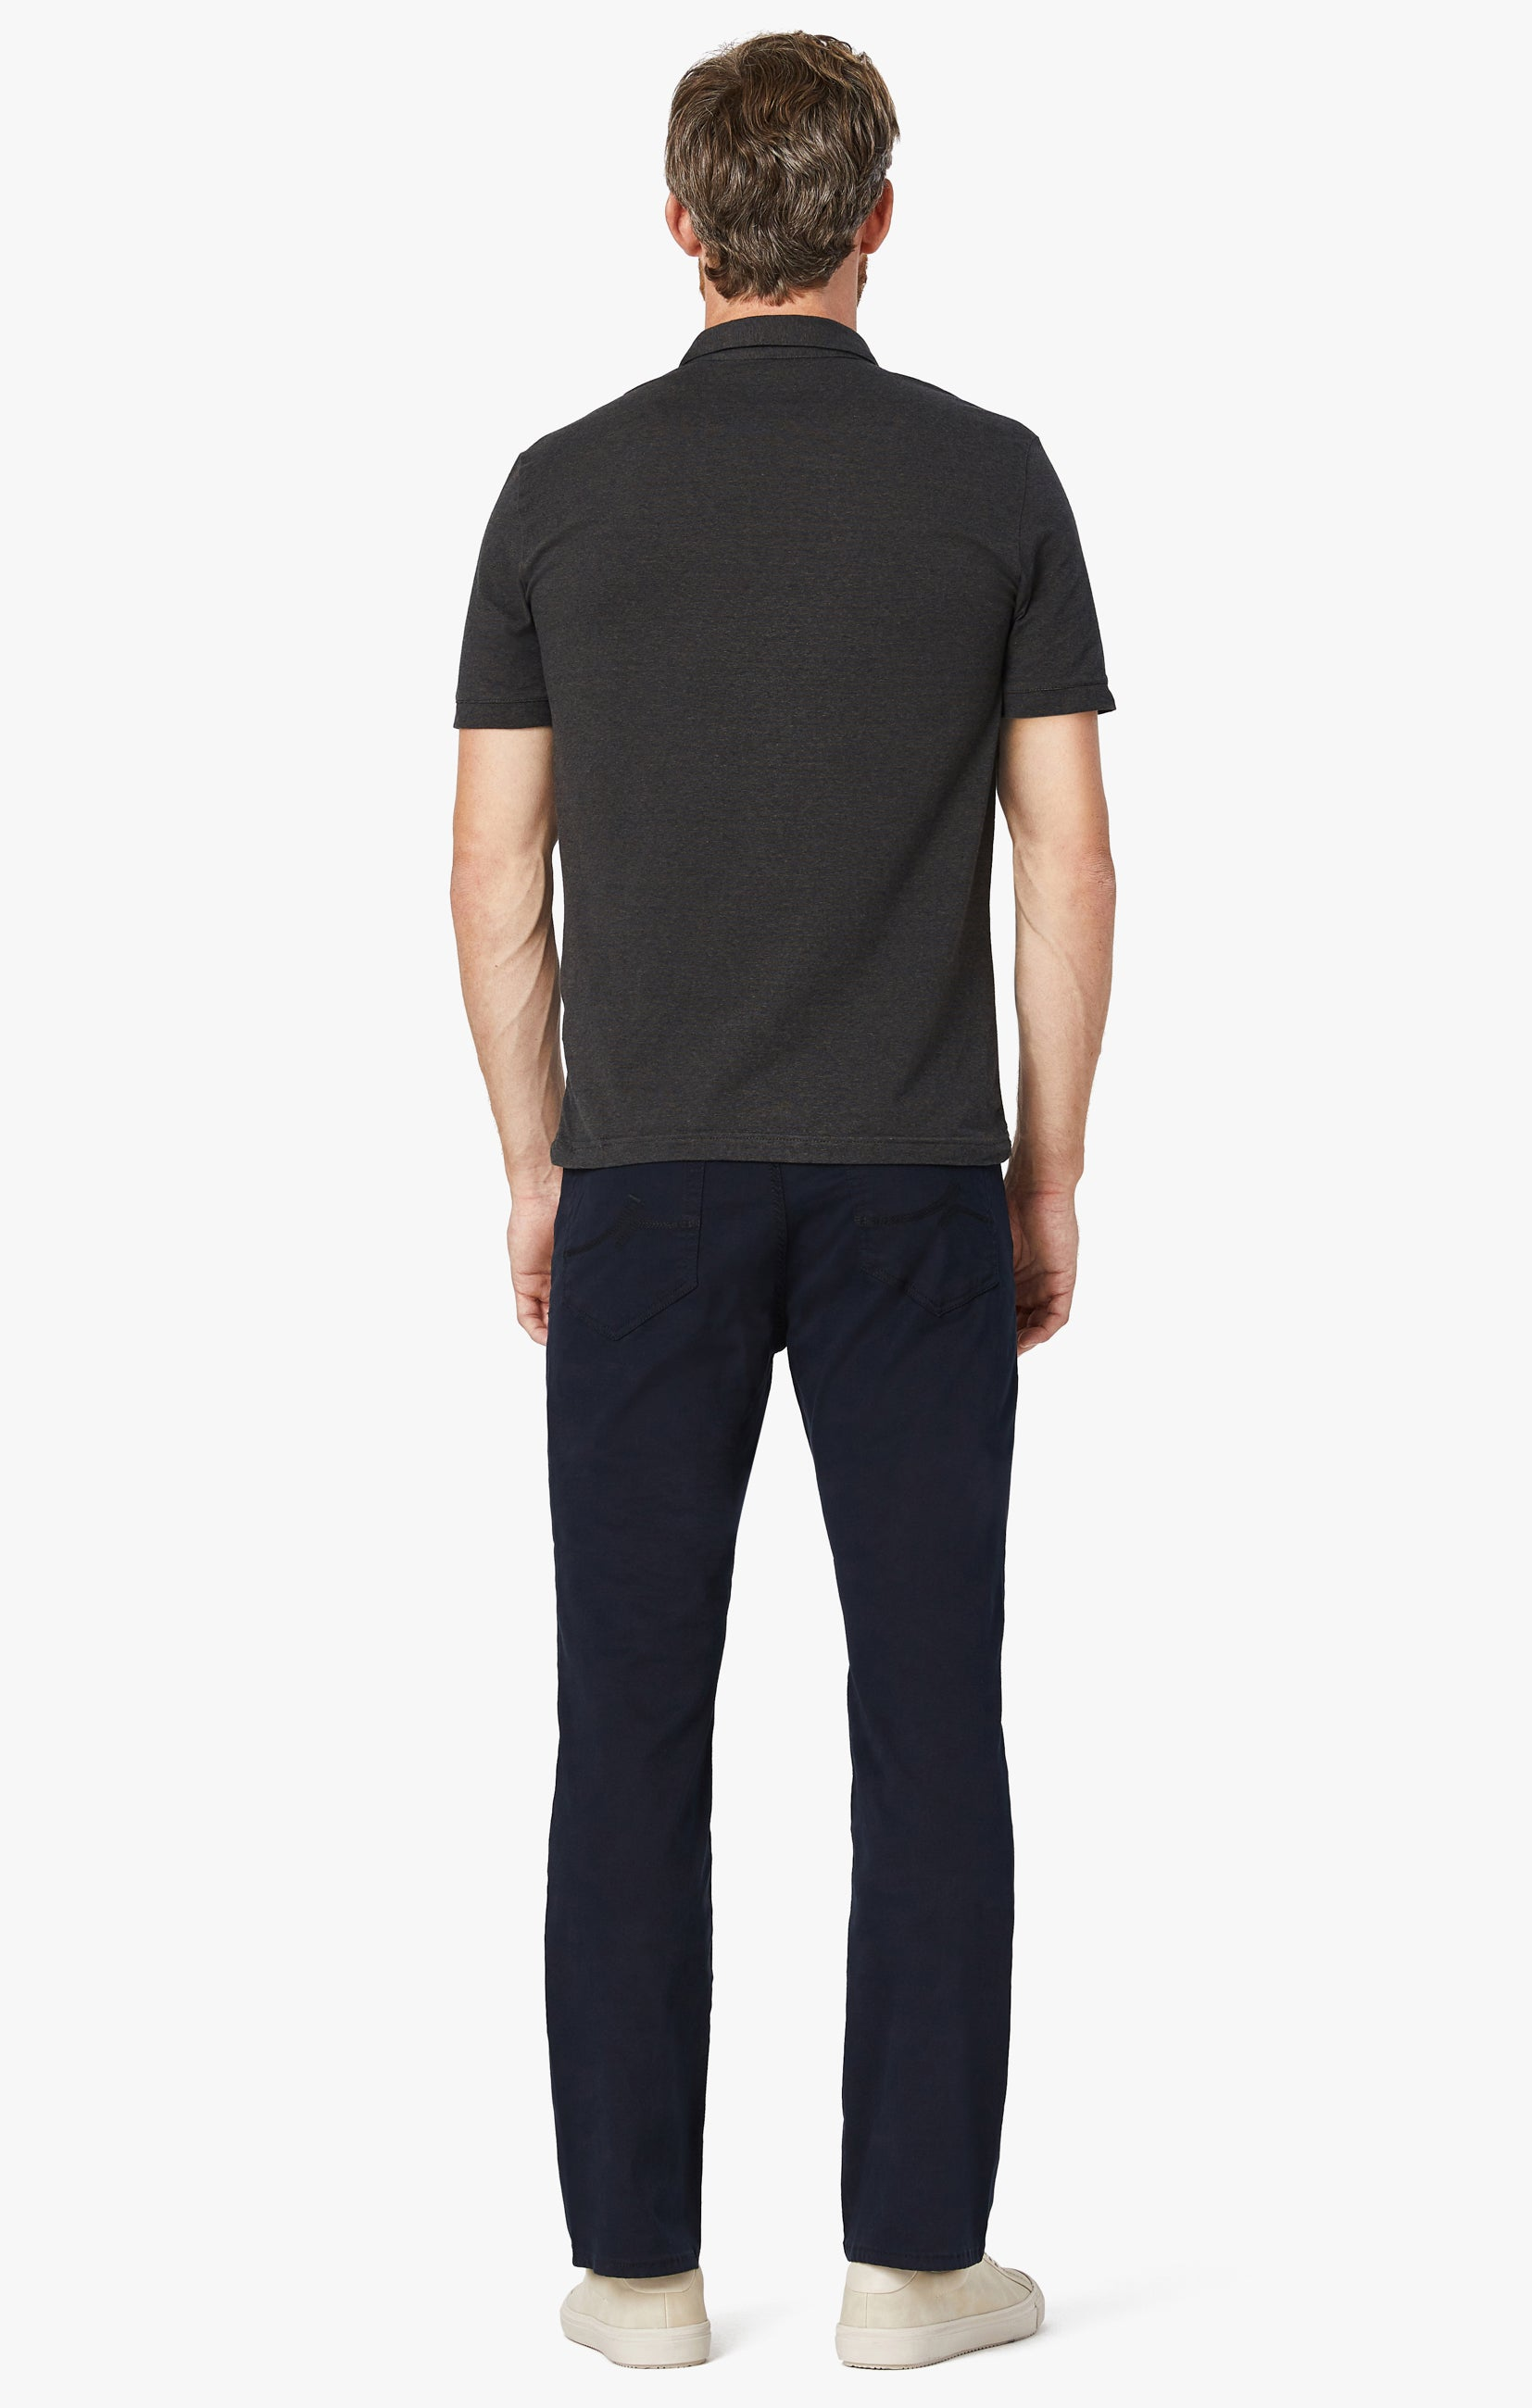 Charisma Relaxed Straight Pants in Navy Twill Image 8